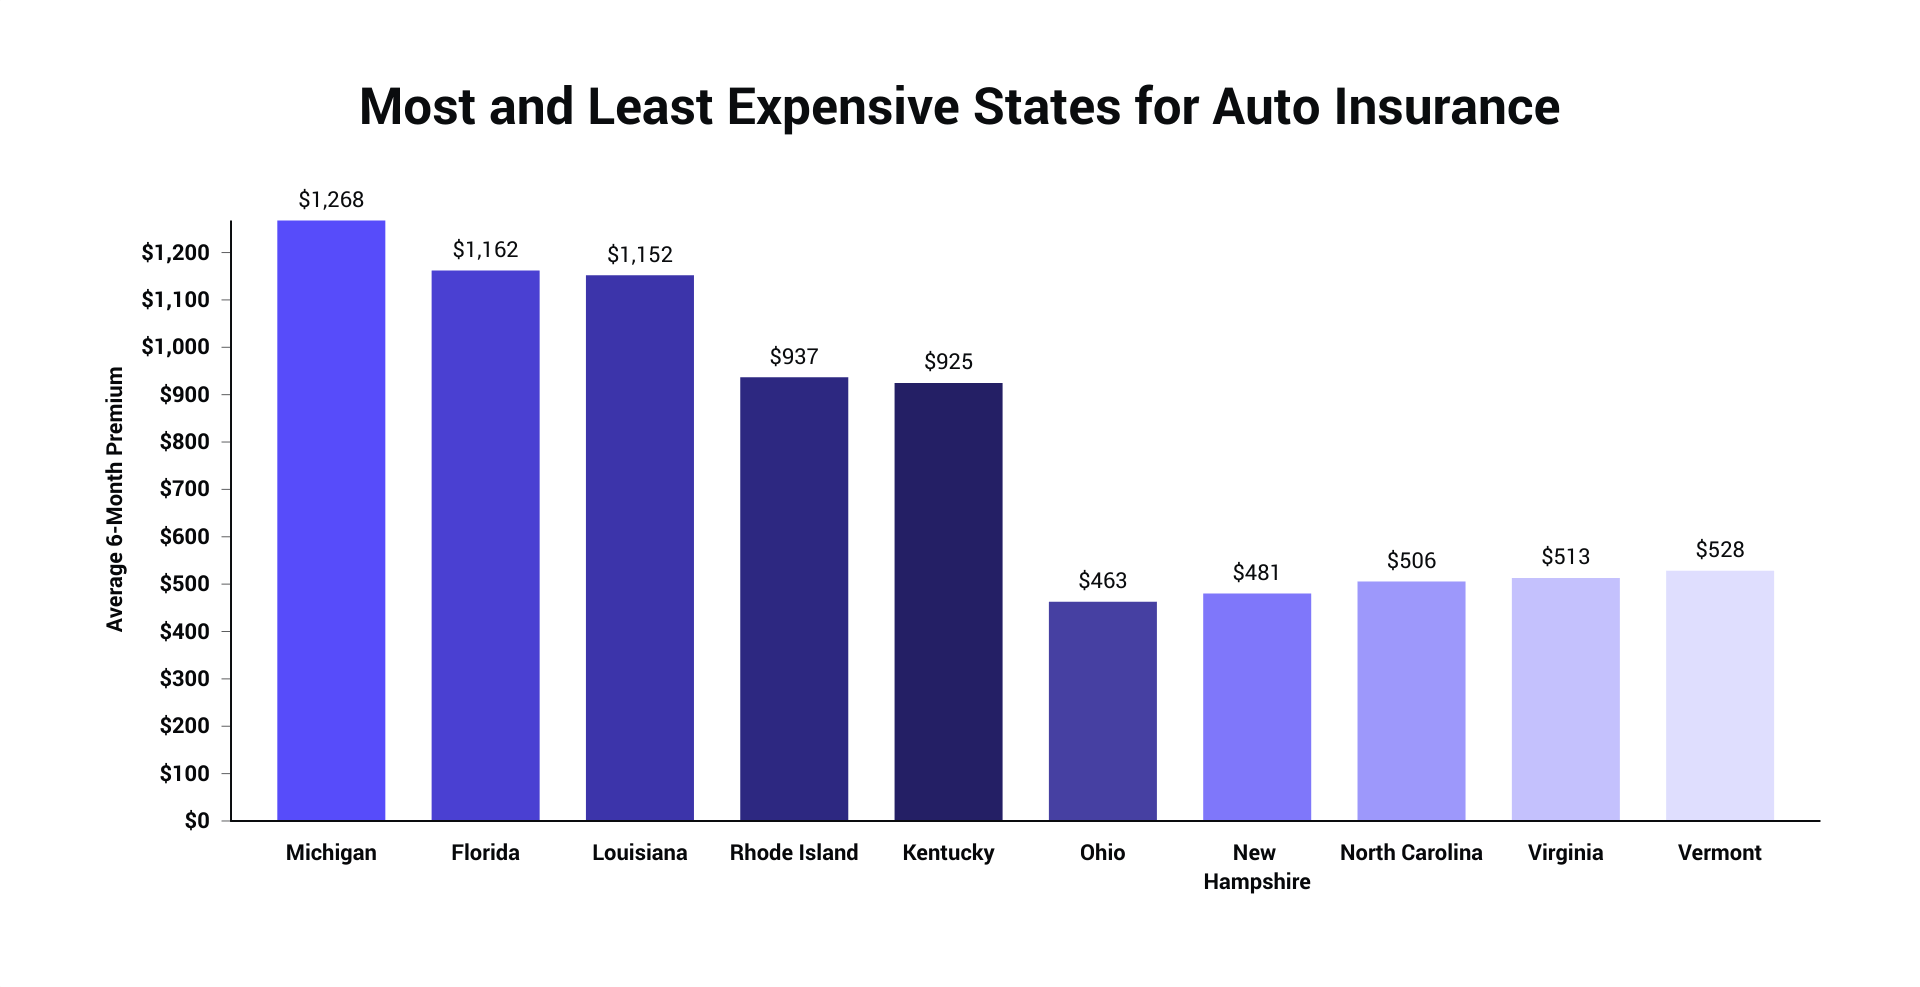 Most and Least Expensive States_2020.png